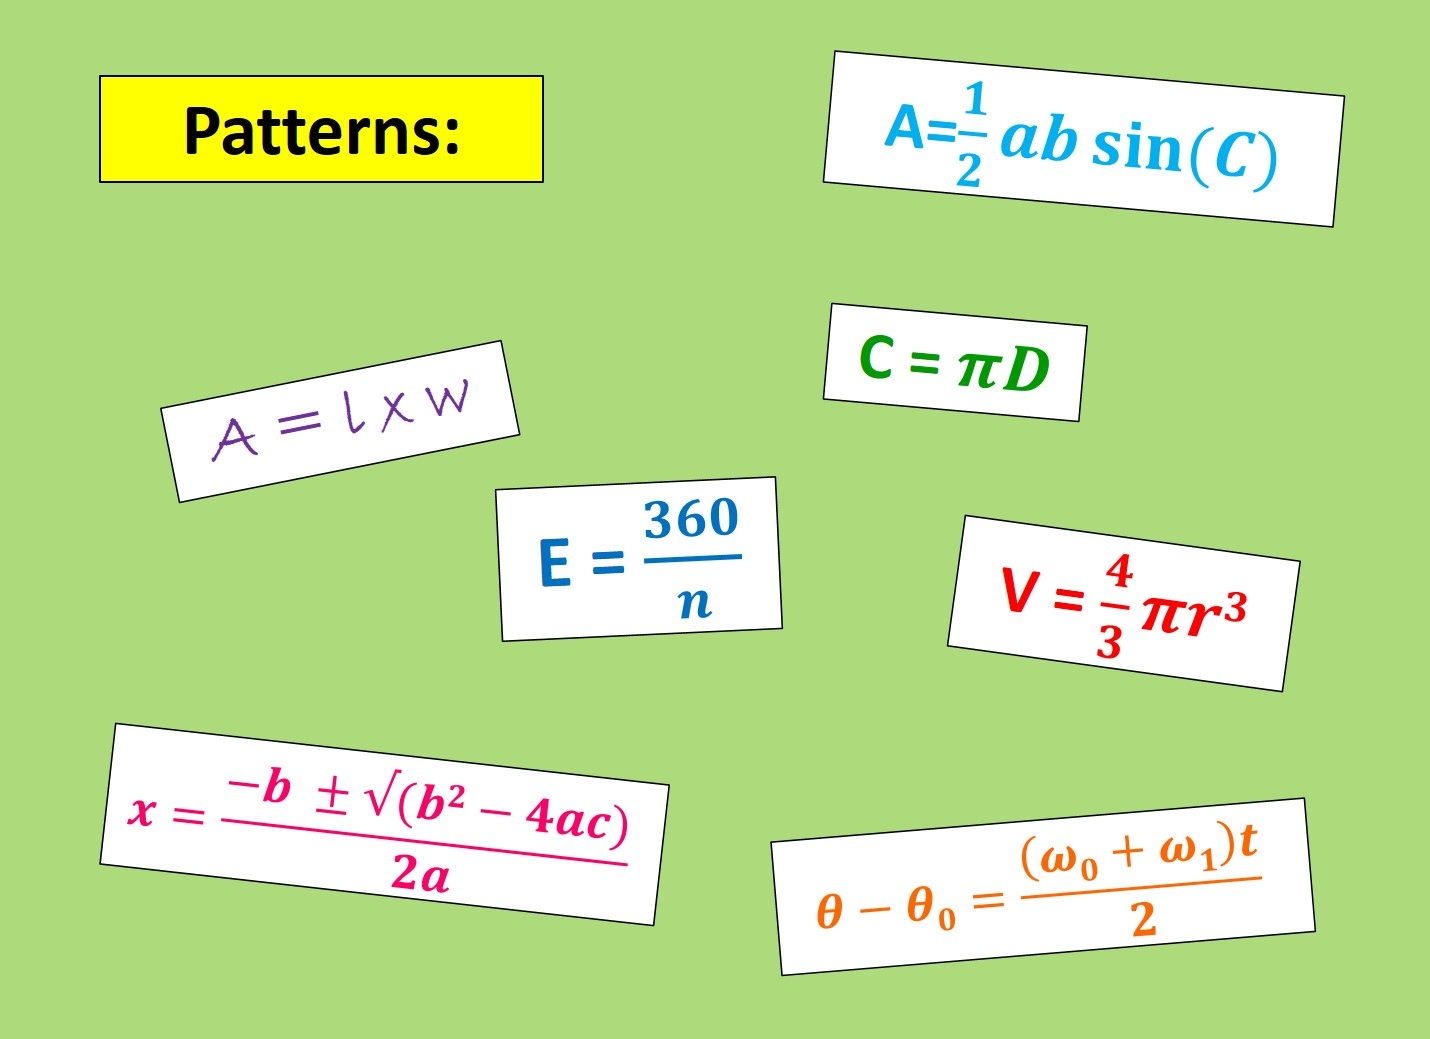 Patterns = Algebra